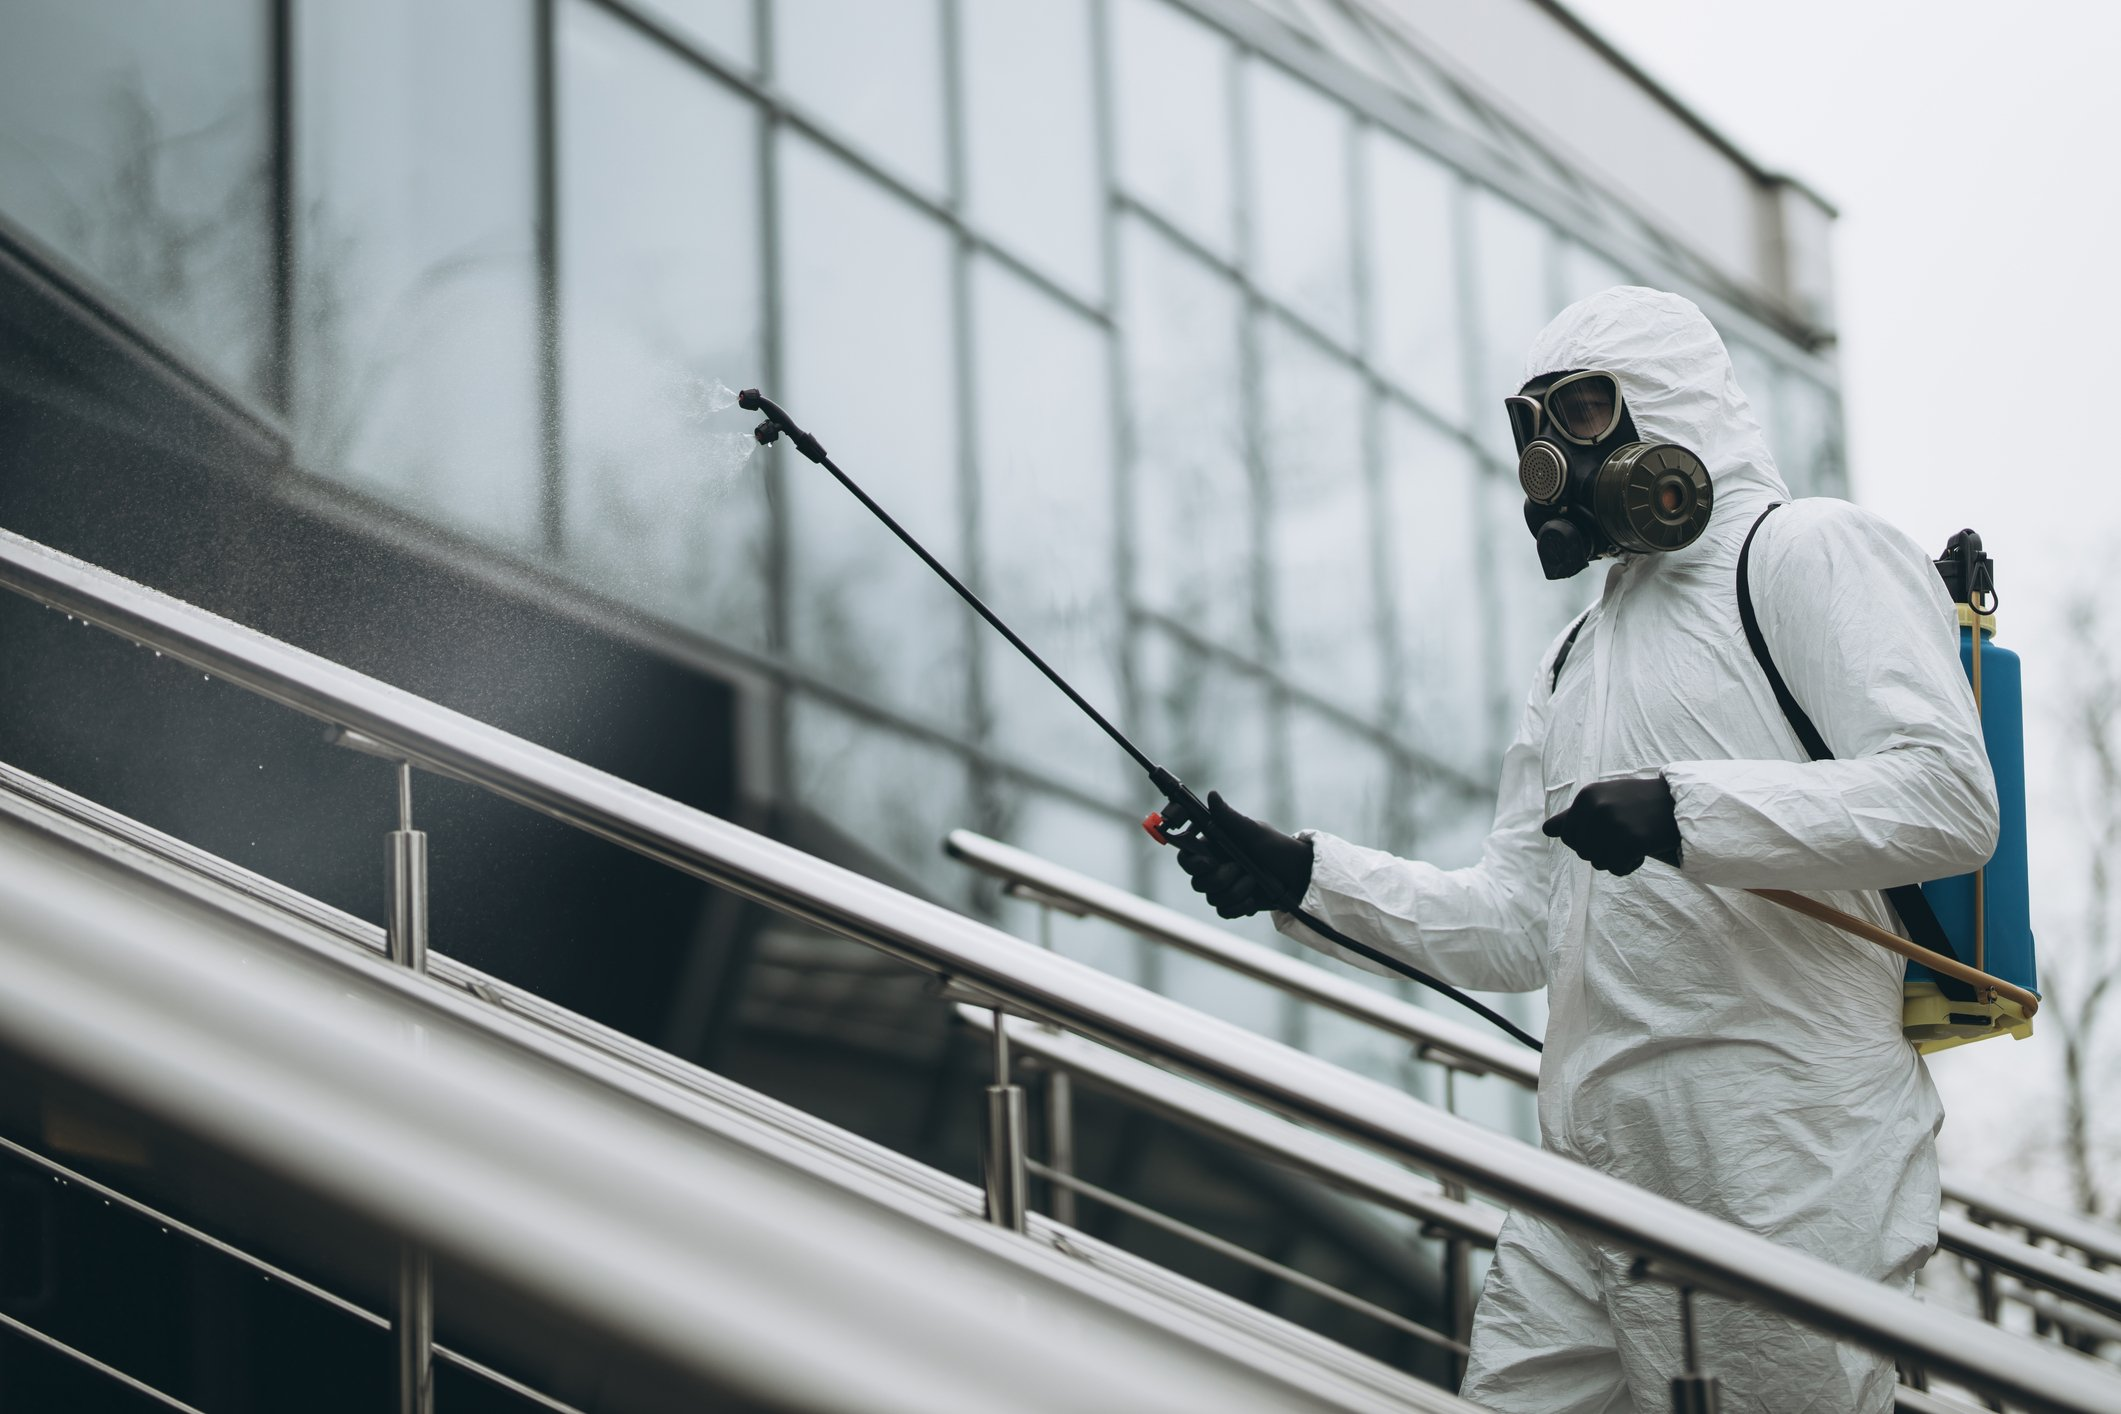 a man in a body suit disinfecting and sanitizing a commercial business